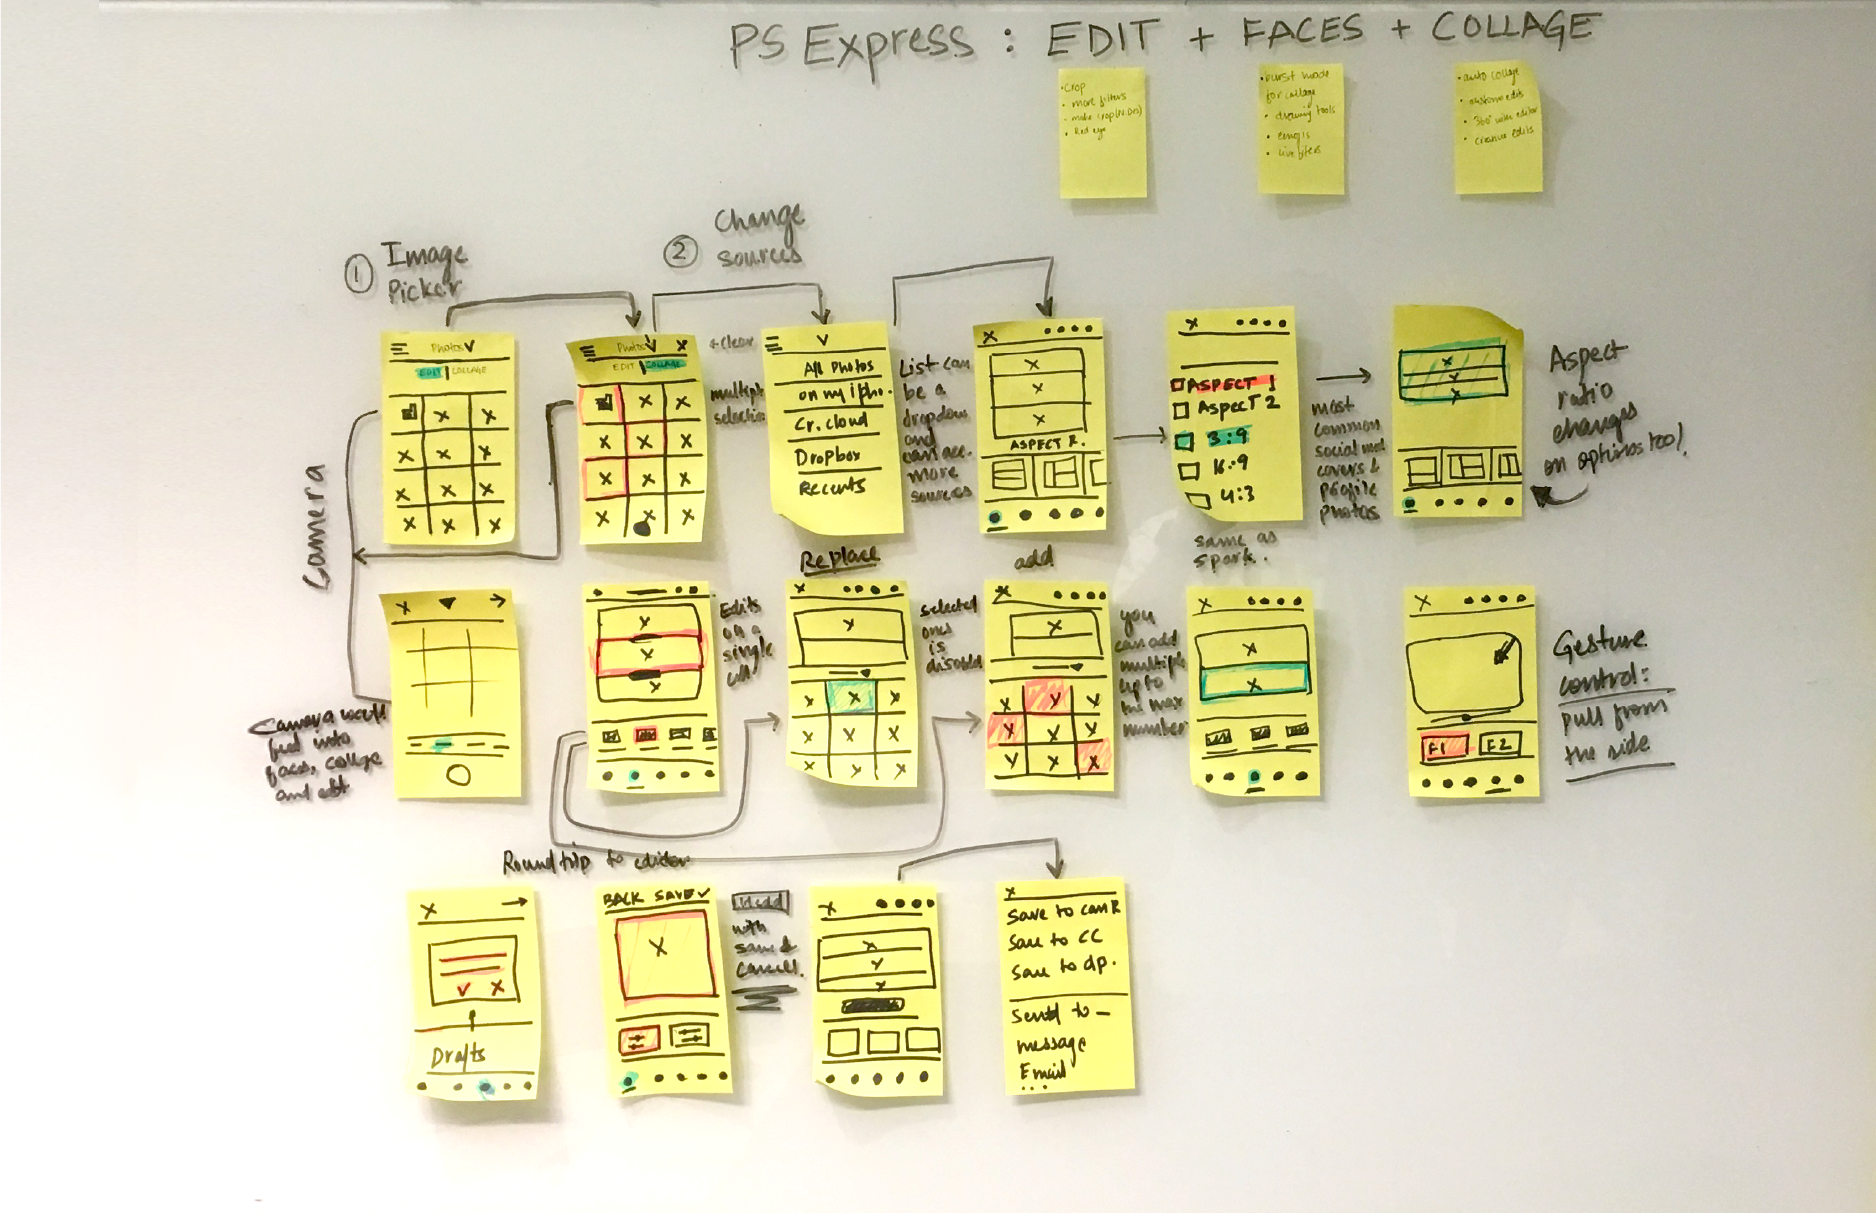 Designing workflows - Initial workflows, wireframingand content mapping